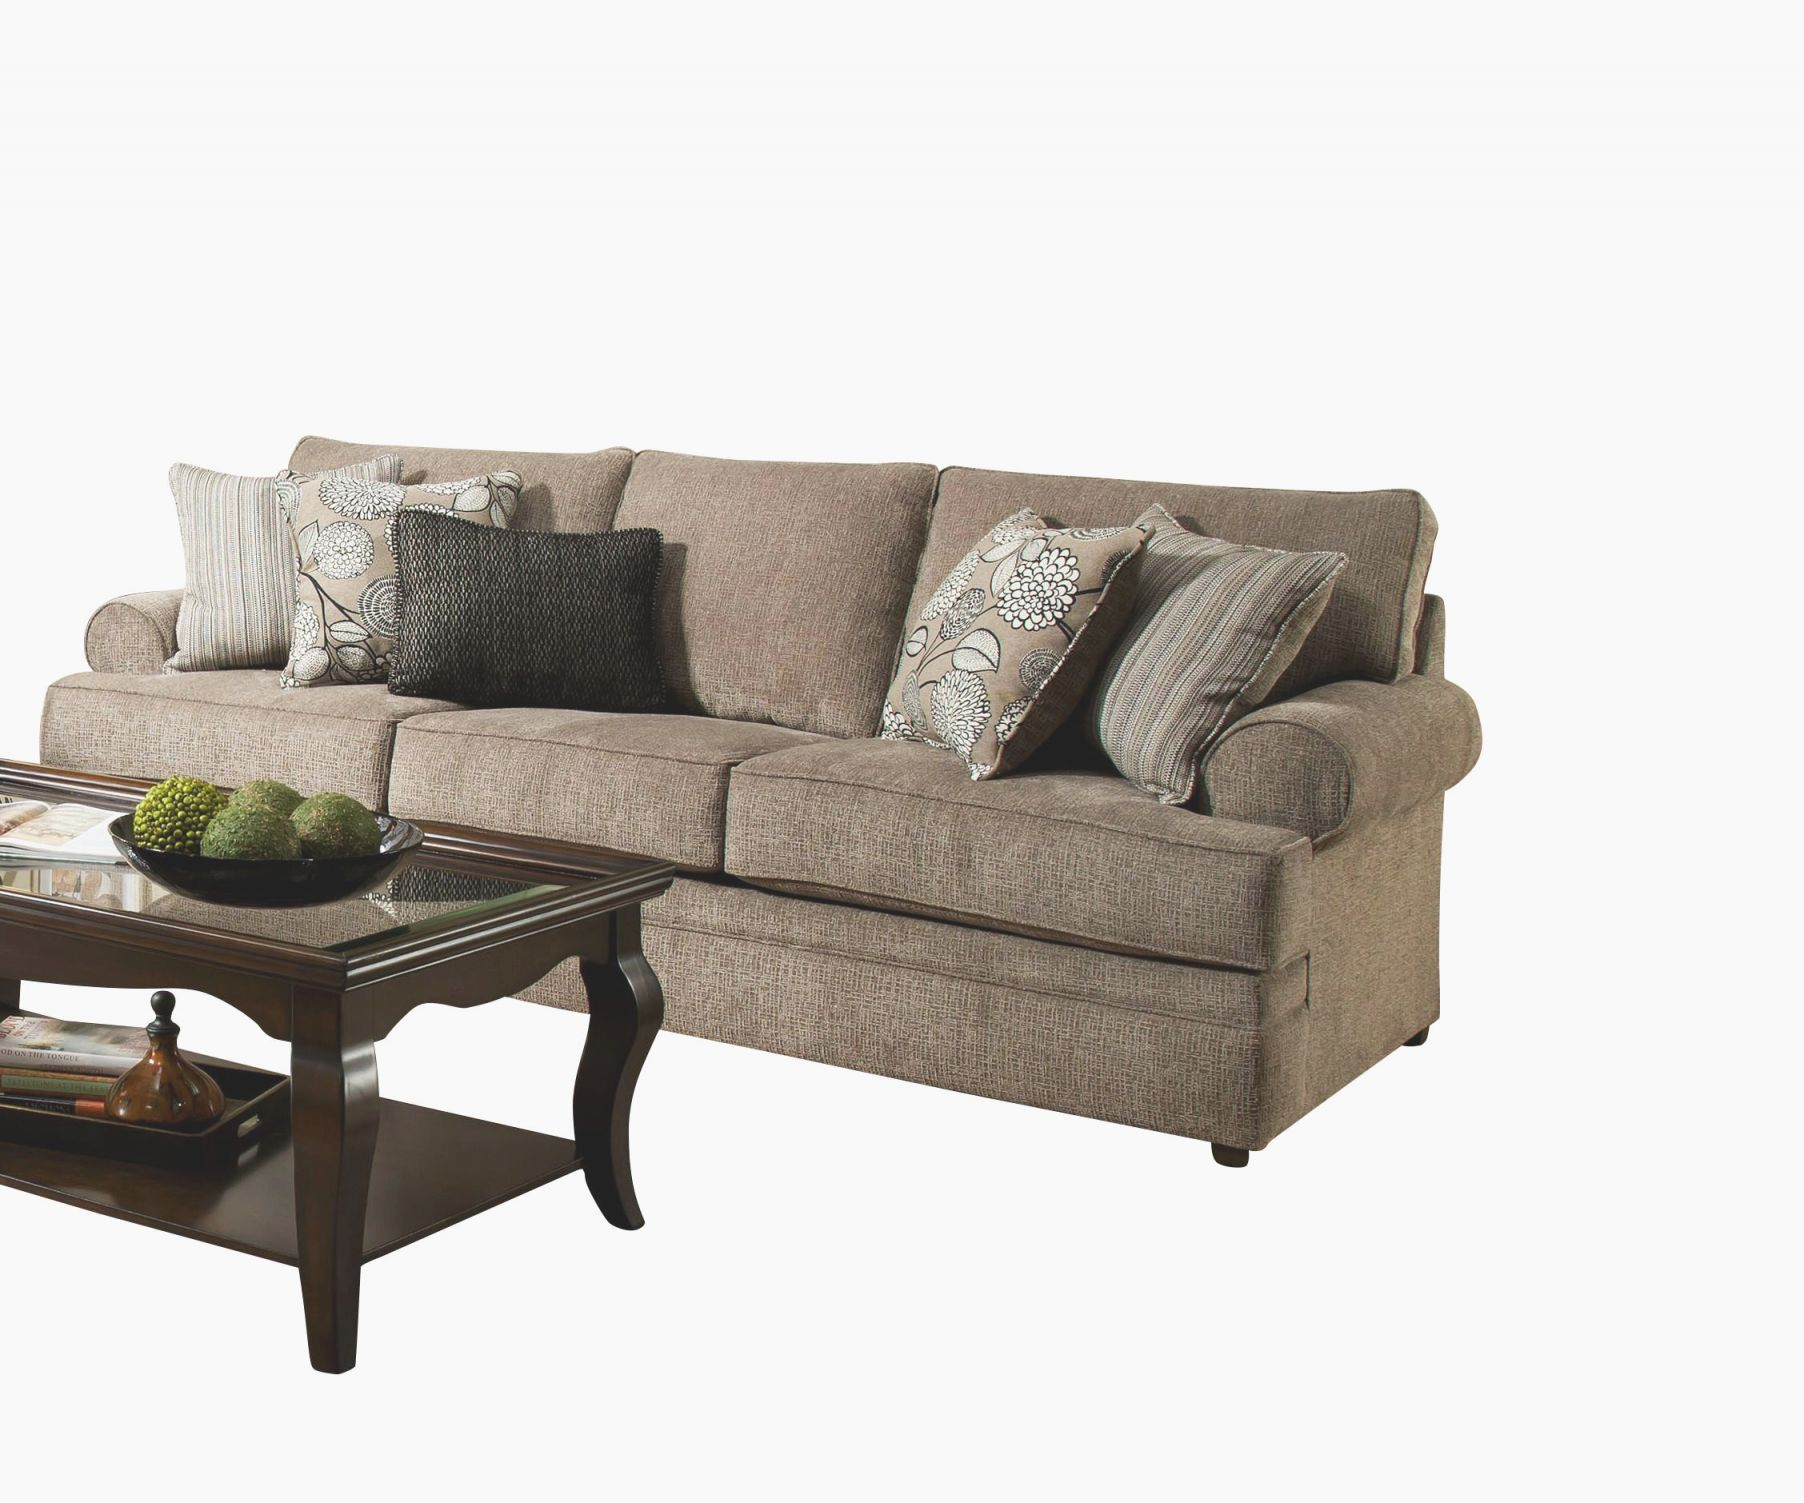 Unique Macy's Living Room Furniture - Awesome Decors